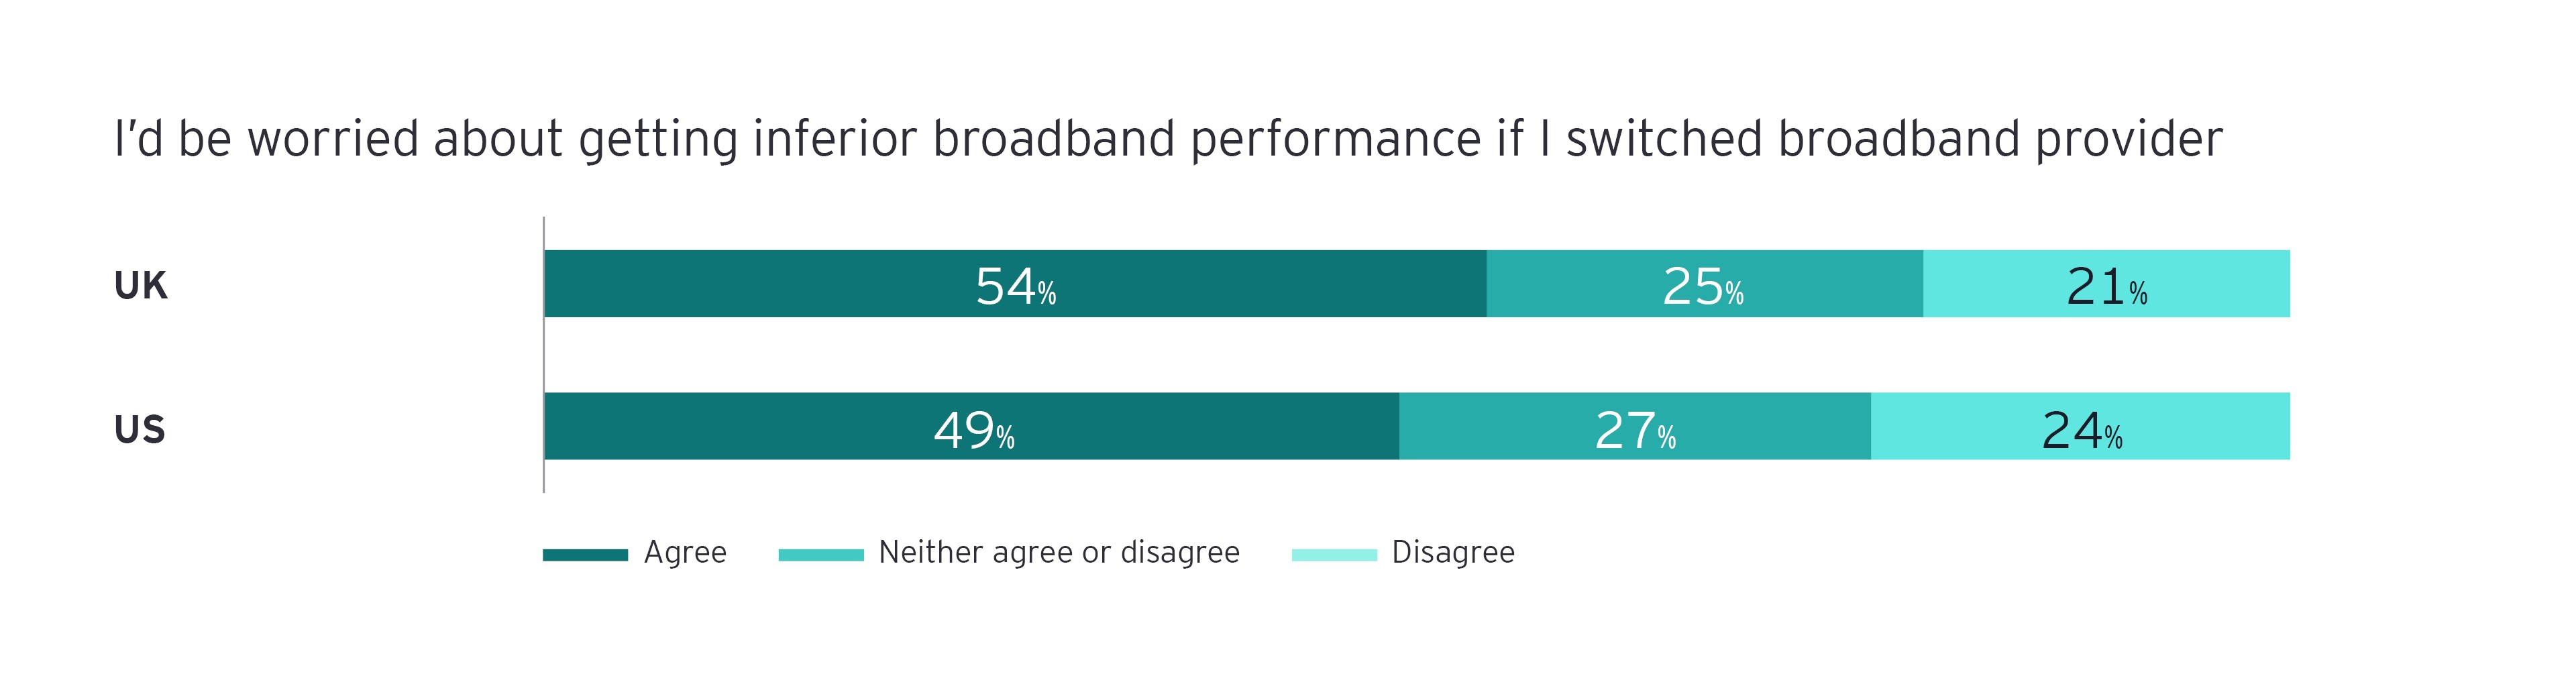 Broadband performance matters most to consumers, but a lack of differentiation means service providers risk commoditization infograph